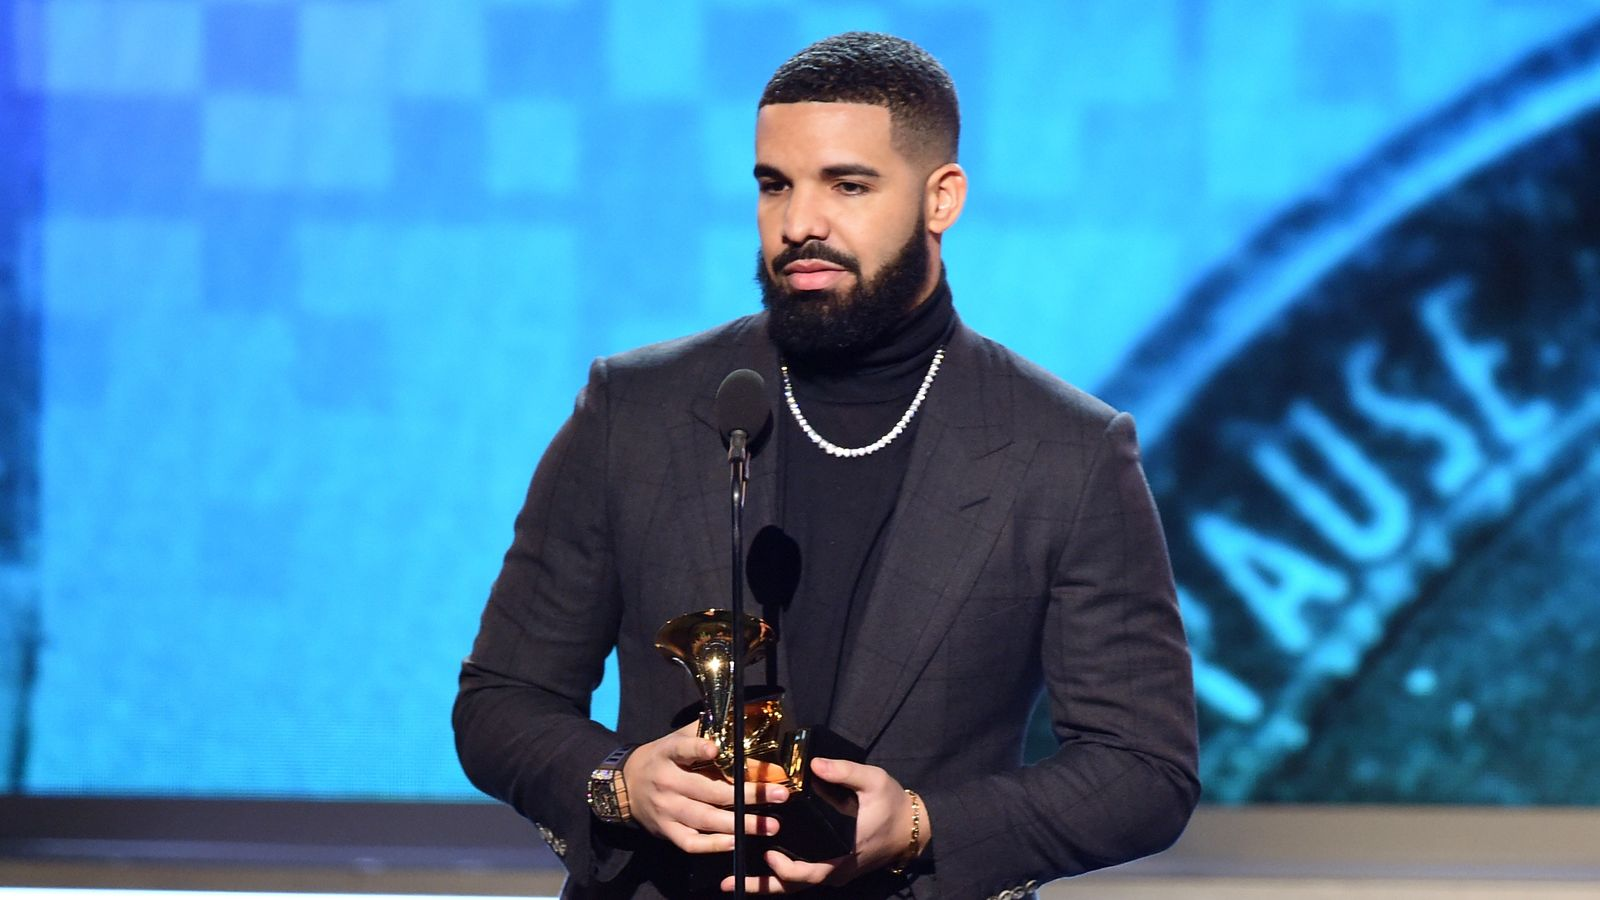 Drake promises to clean his room in childhood note on sale for $7,500 |  Ents & Arts News | Sky News